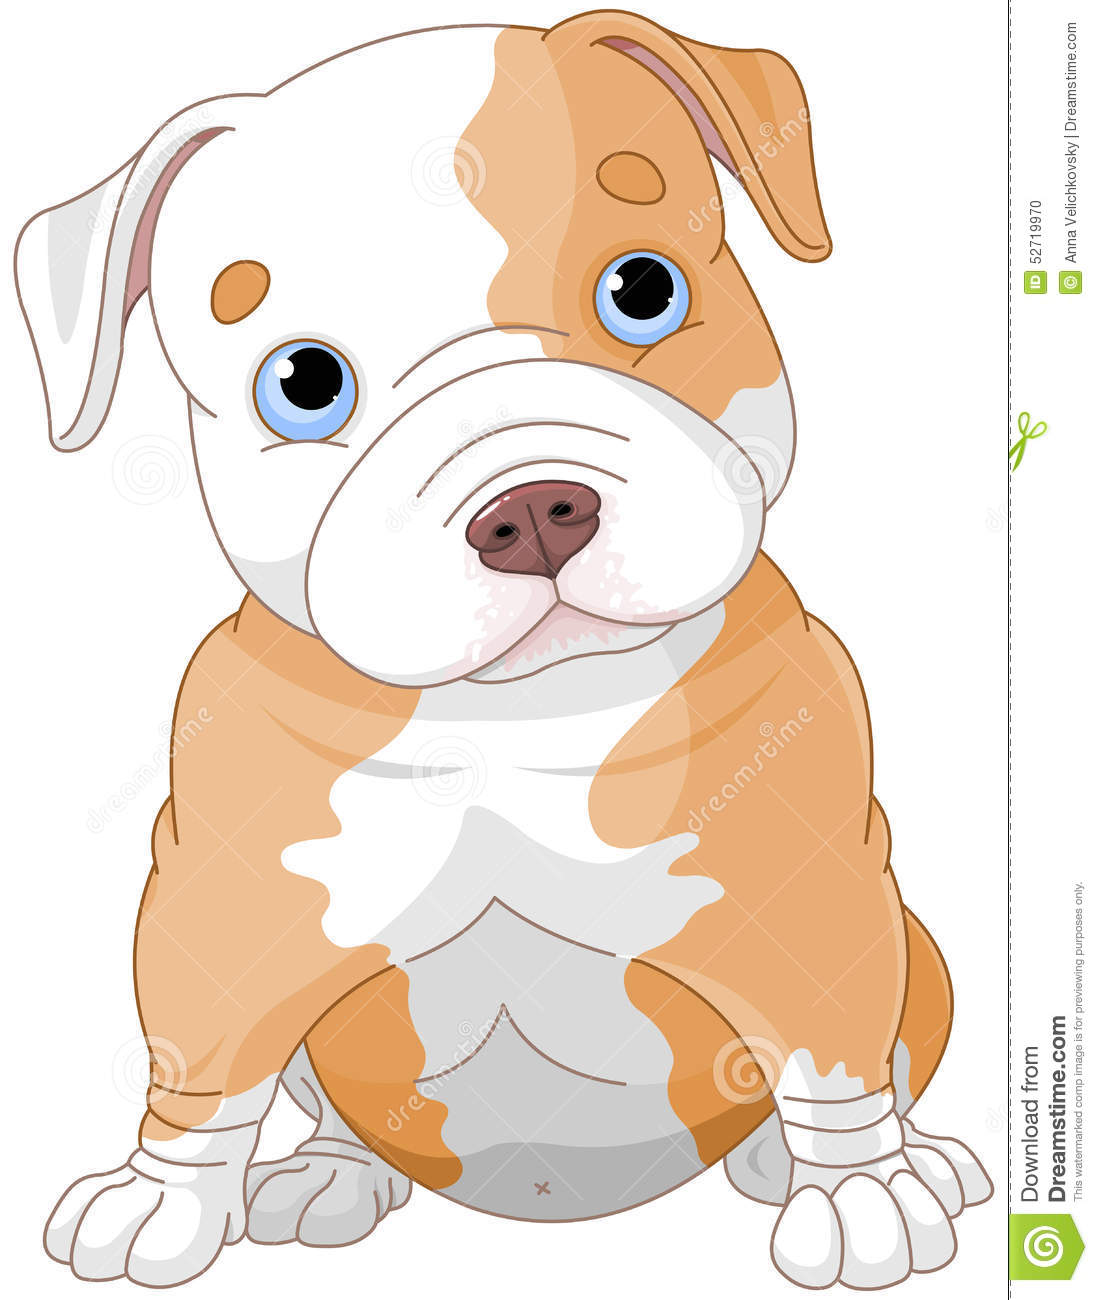 Pitbull Puppy Stock Vector - Image: 52719970